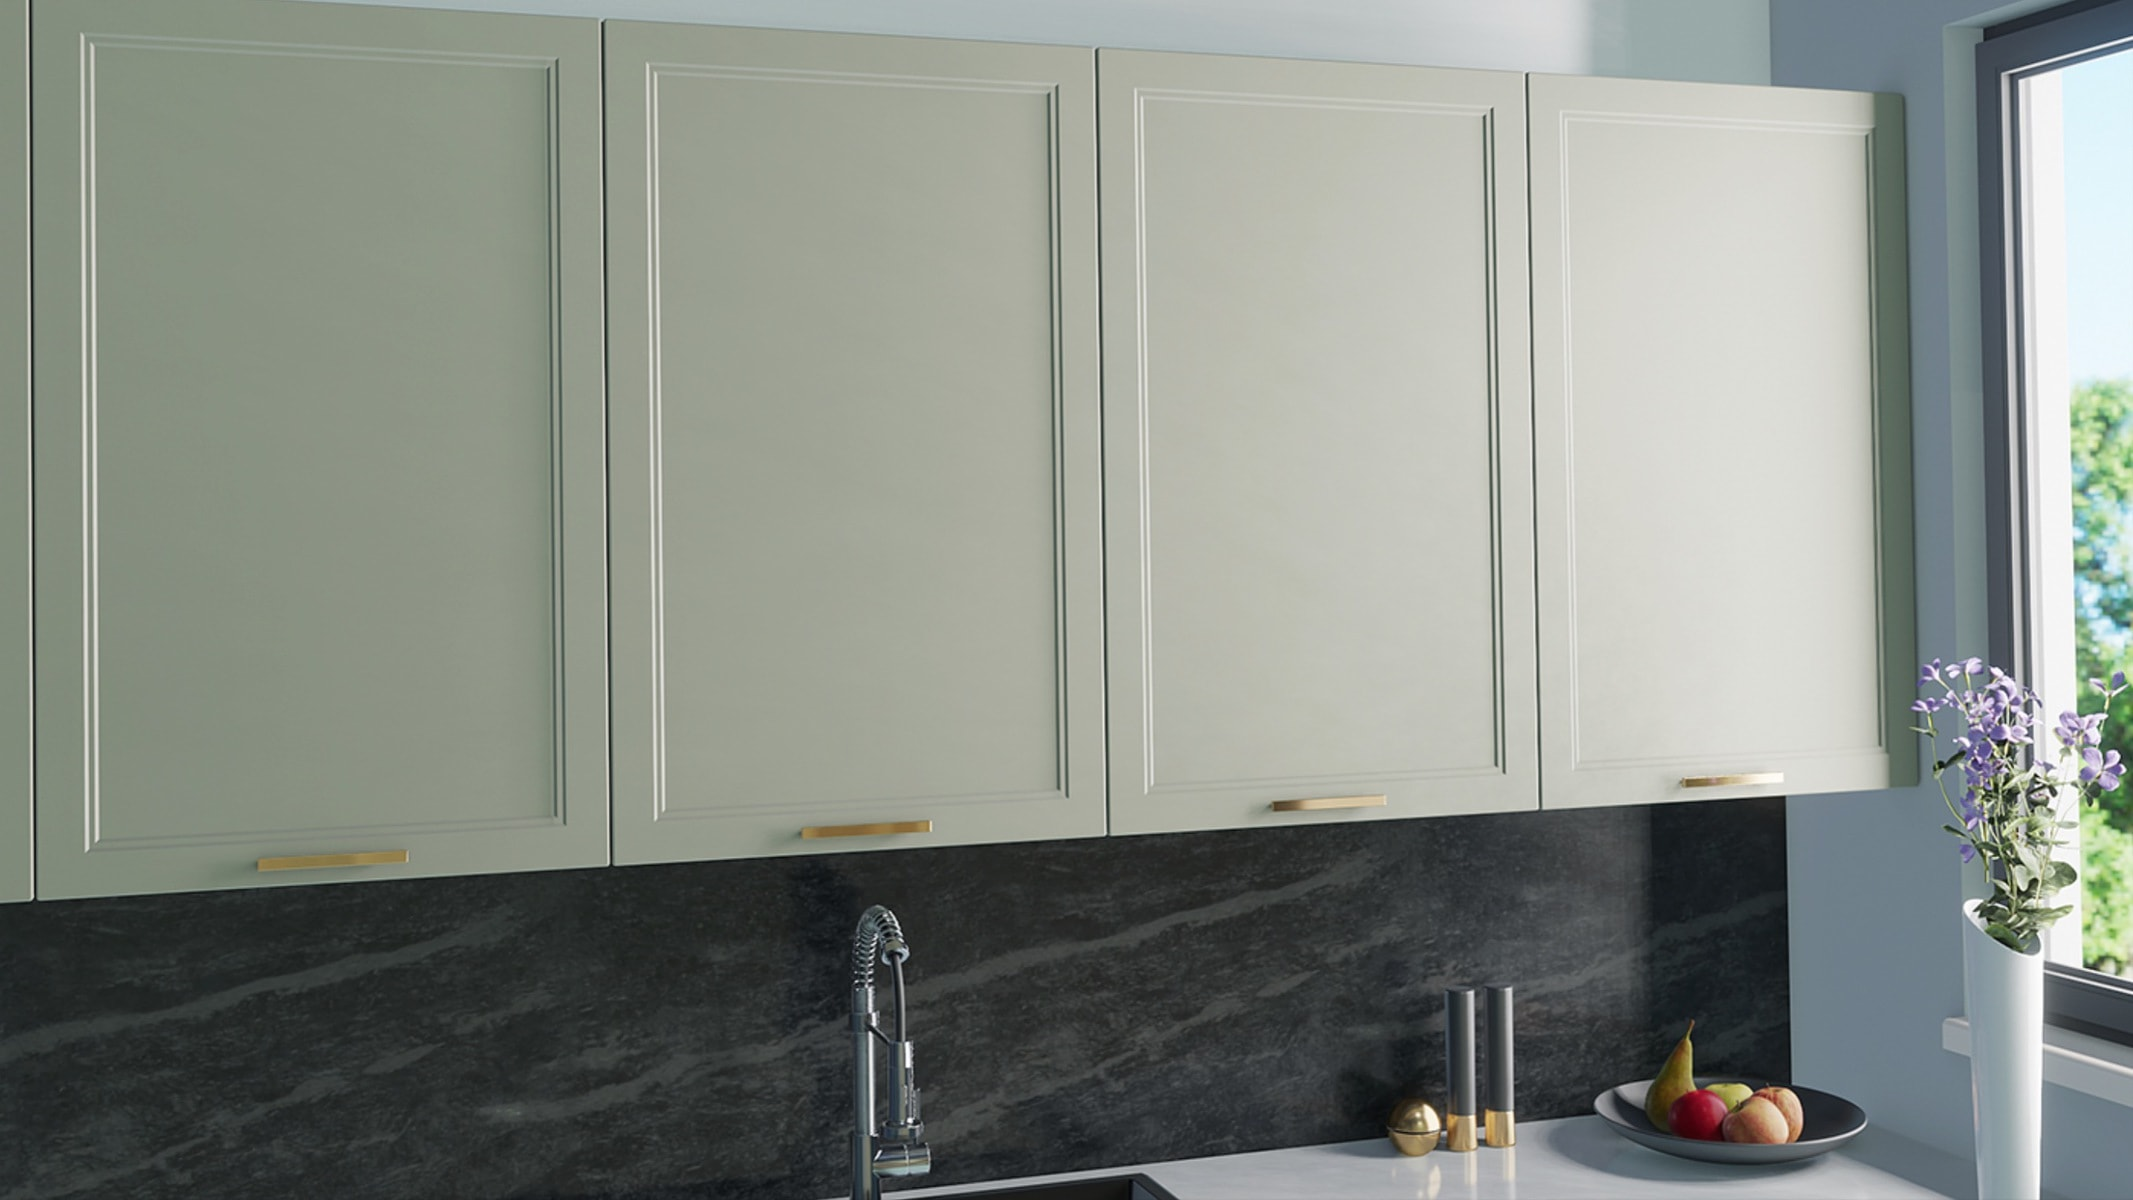 Kitchen Cabinet Doors for IKEA Faktum in Caffe Latte Colour